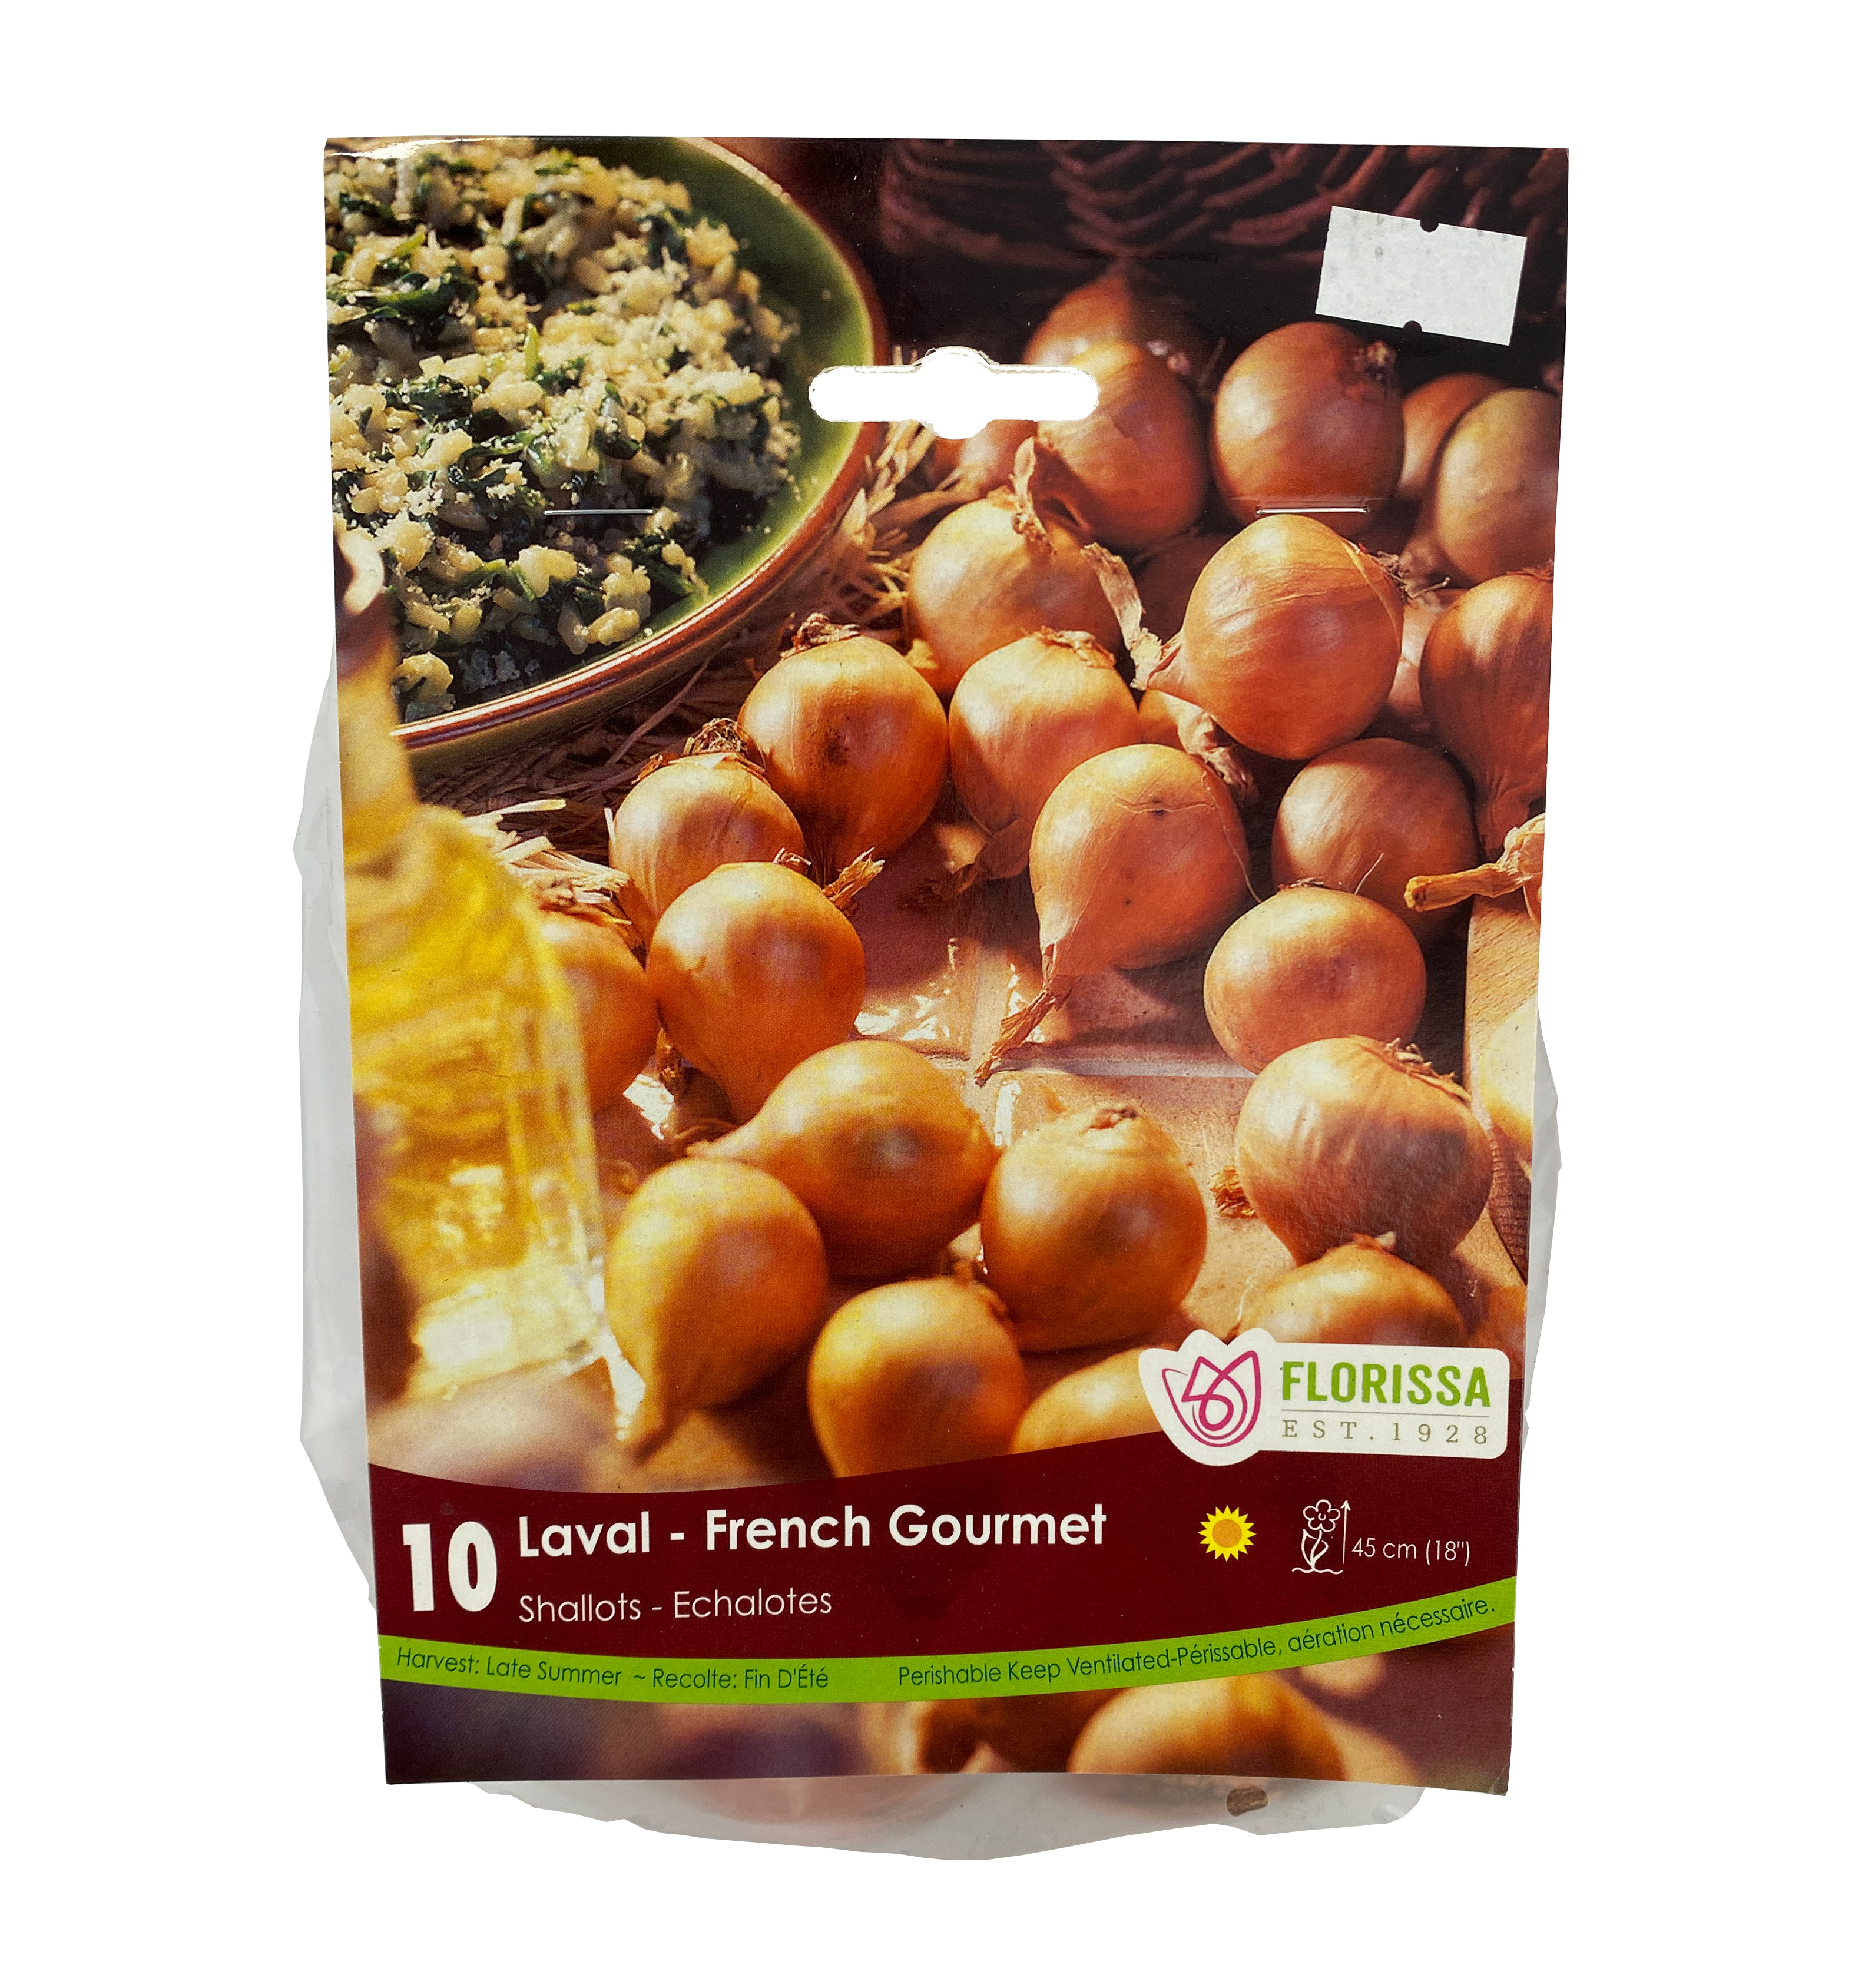 Laval French Gourmet Shallots